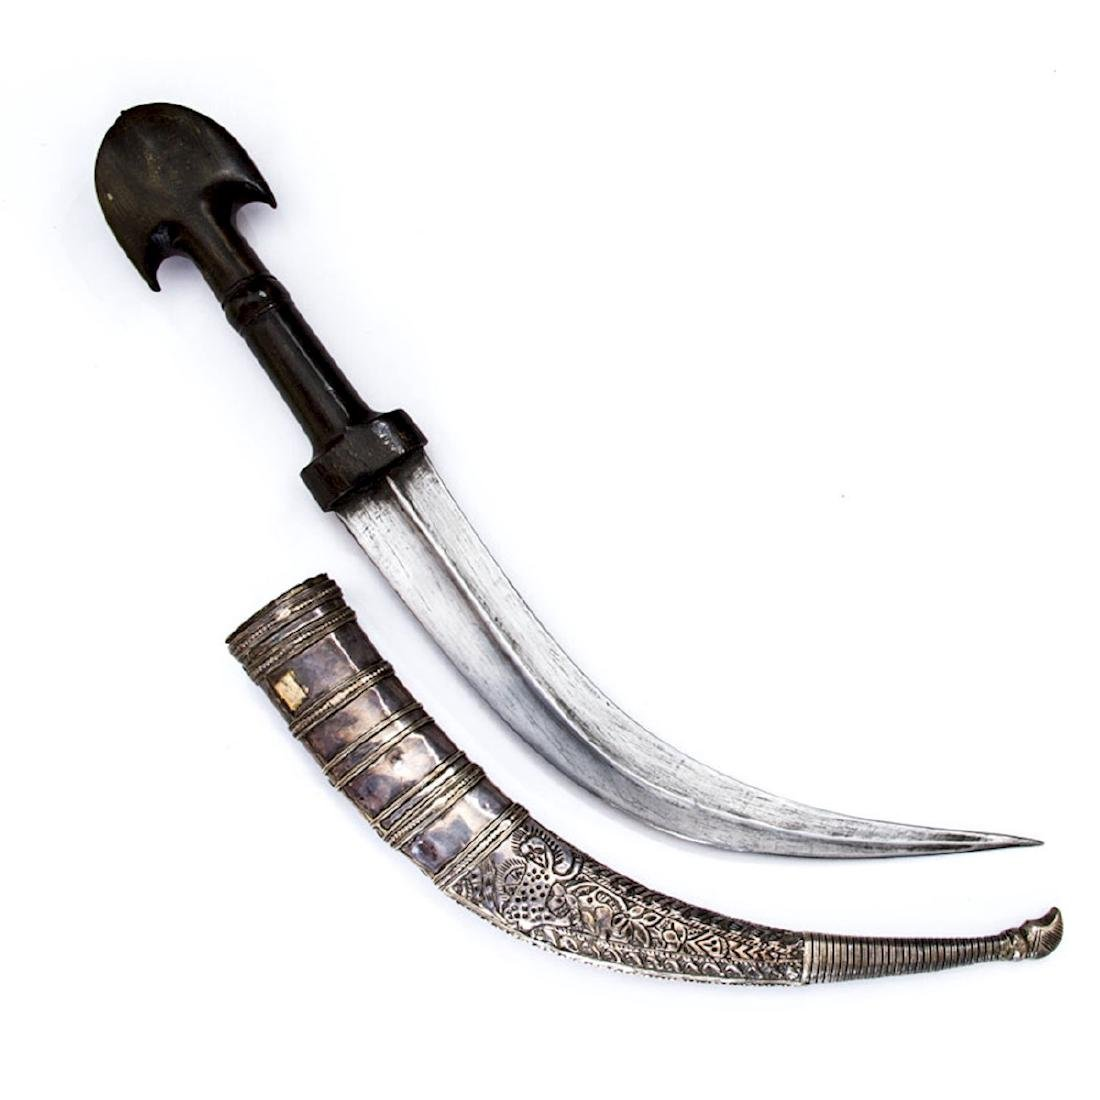 JAMBIYA DAGGER WITH SILVER MOUNTS, TURKEY - 2